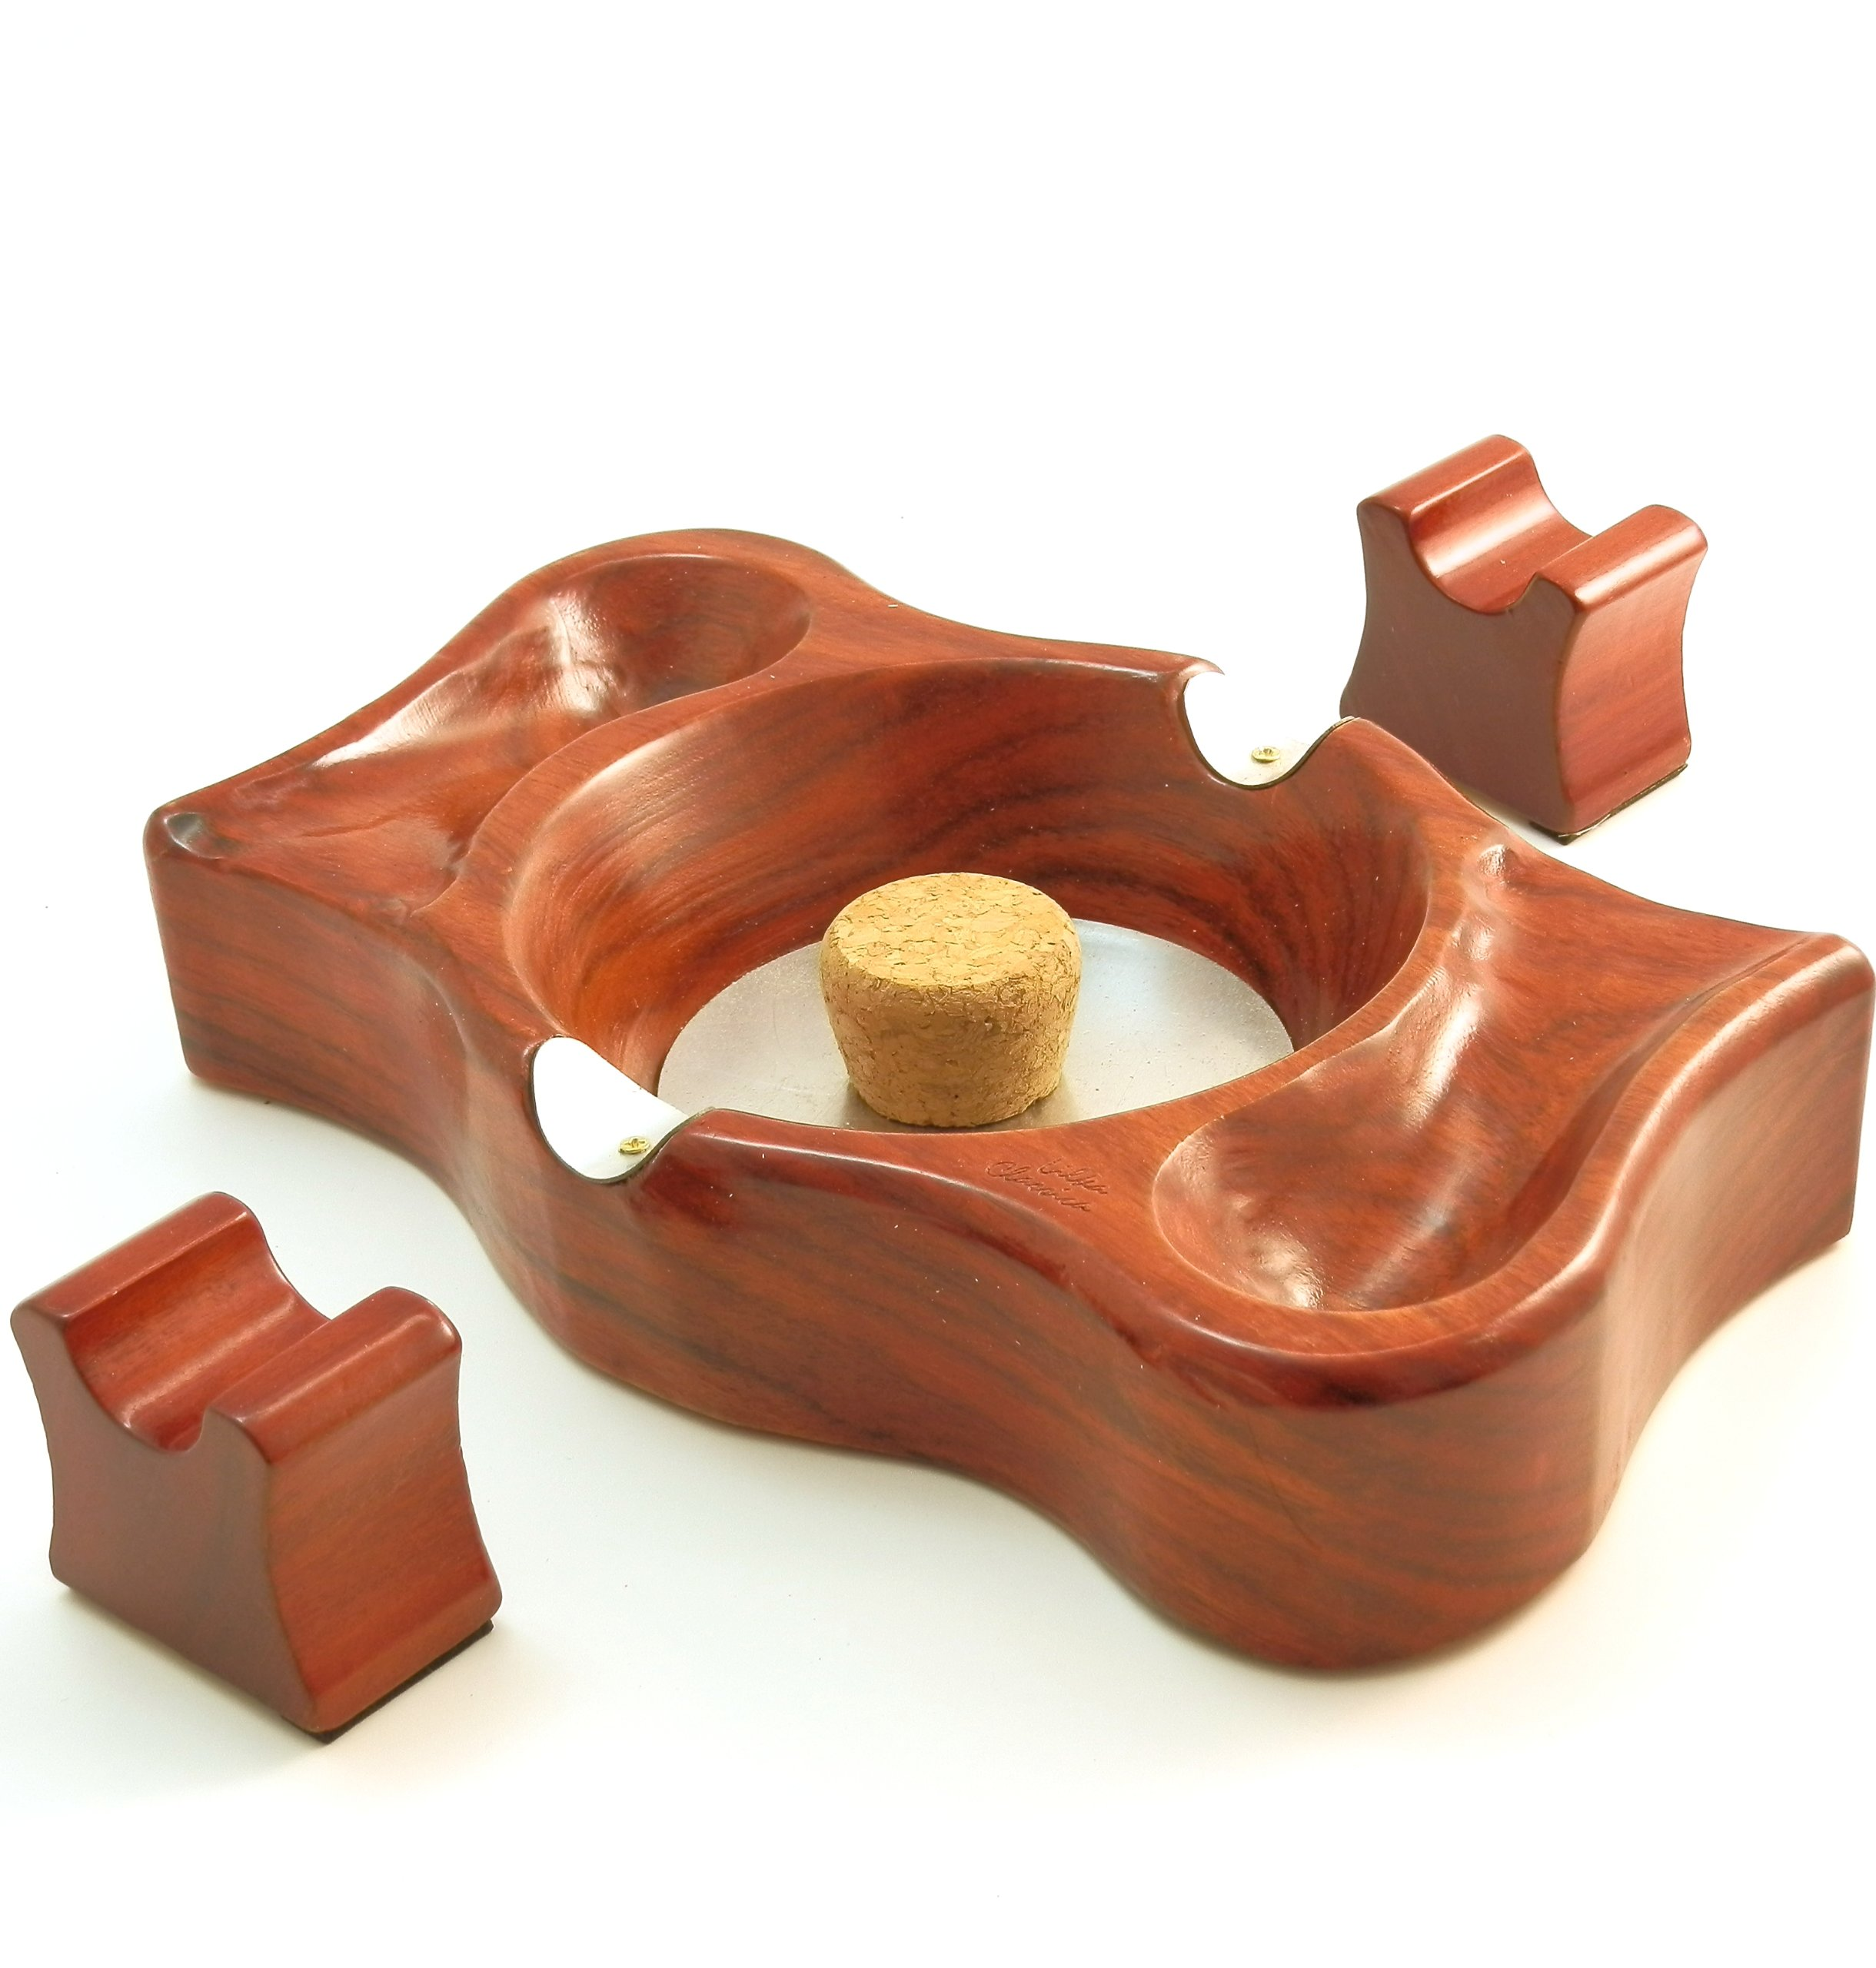 Tobacco Pipe and Cigar Ash Tray & Stand Combo